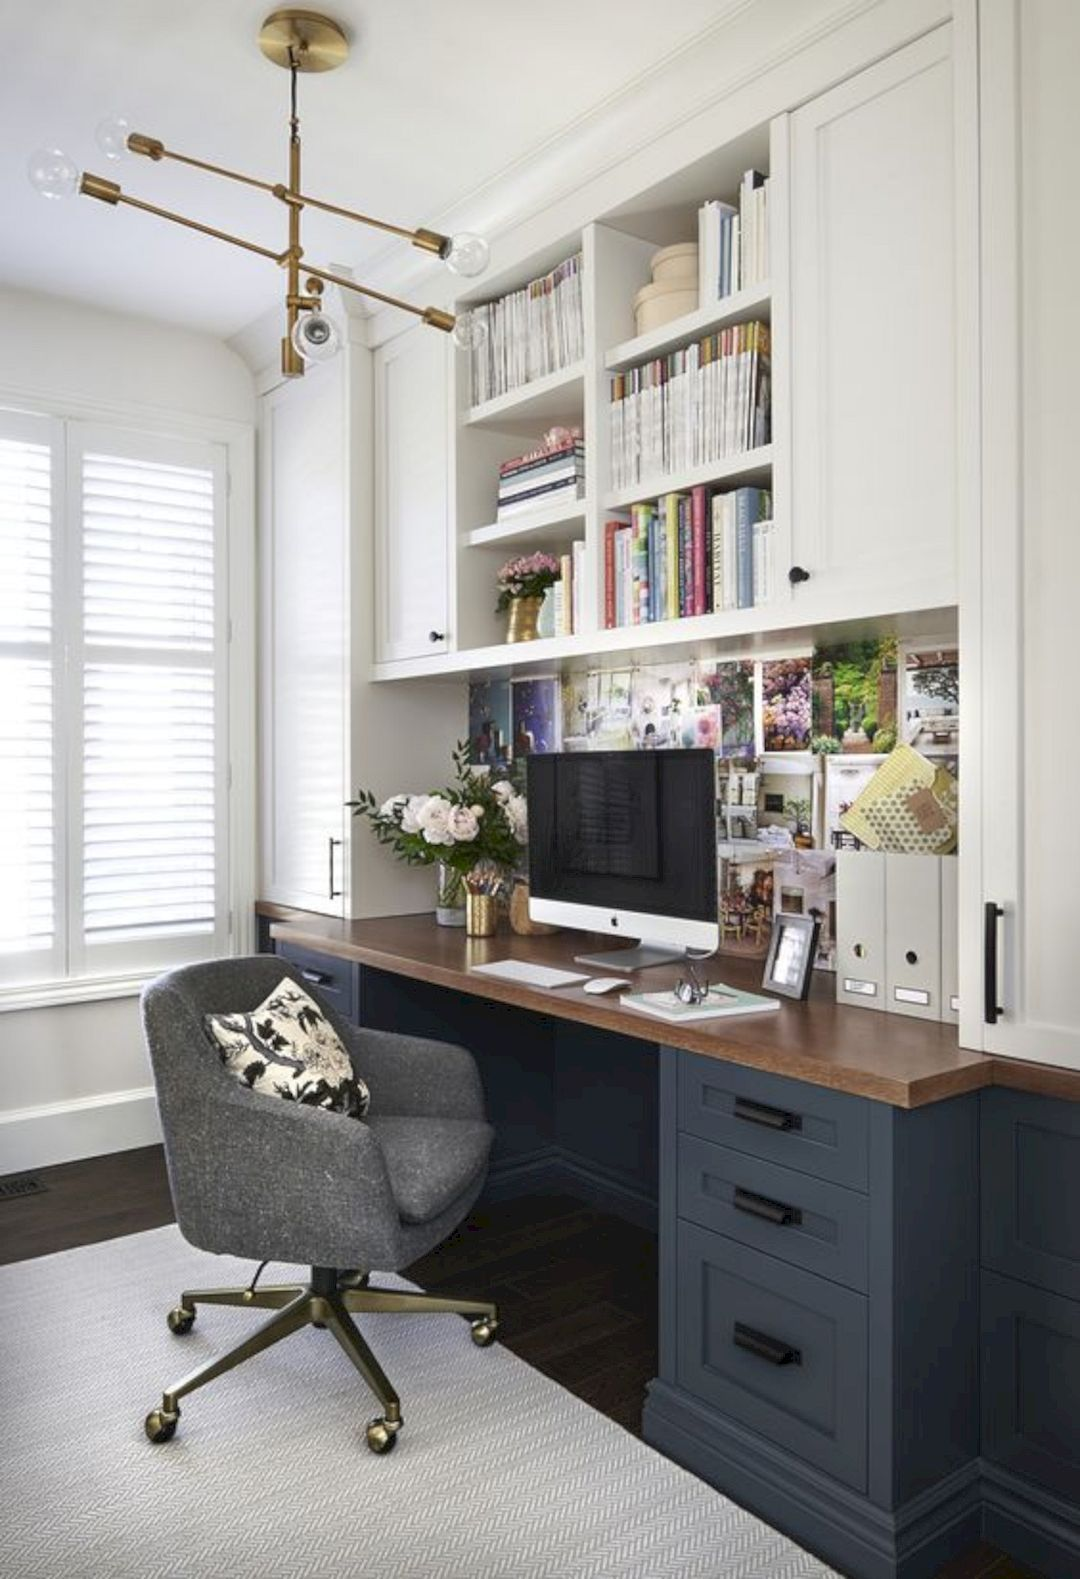 21 Modern Home Office Furniture Ideas Https://www.futuristarchitecture.com/